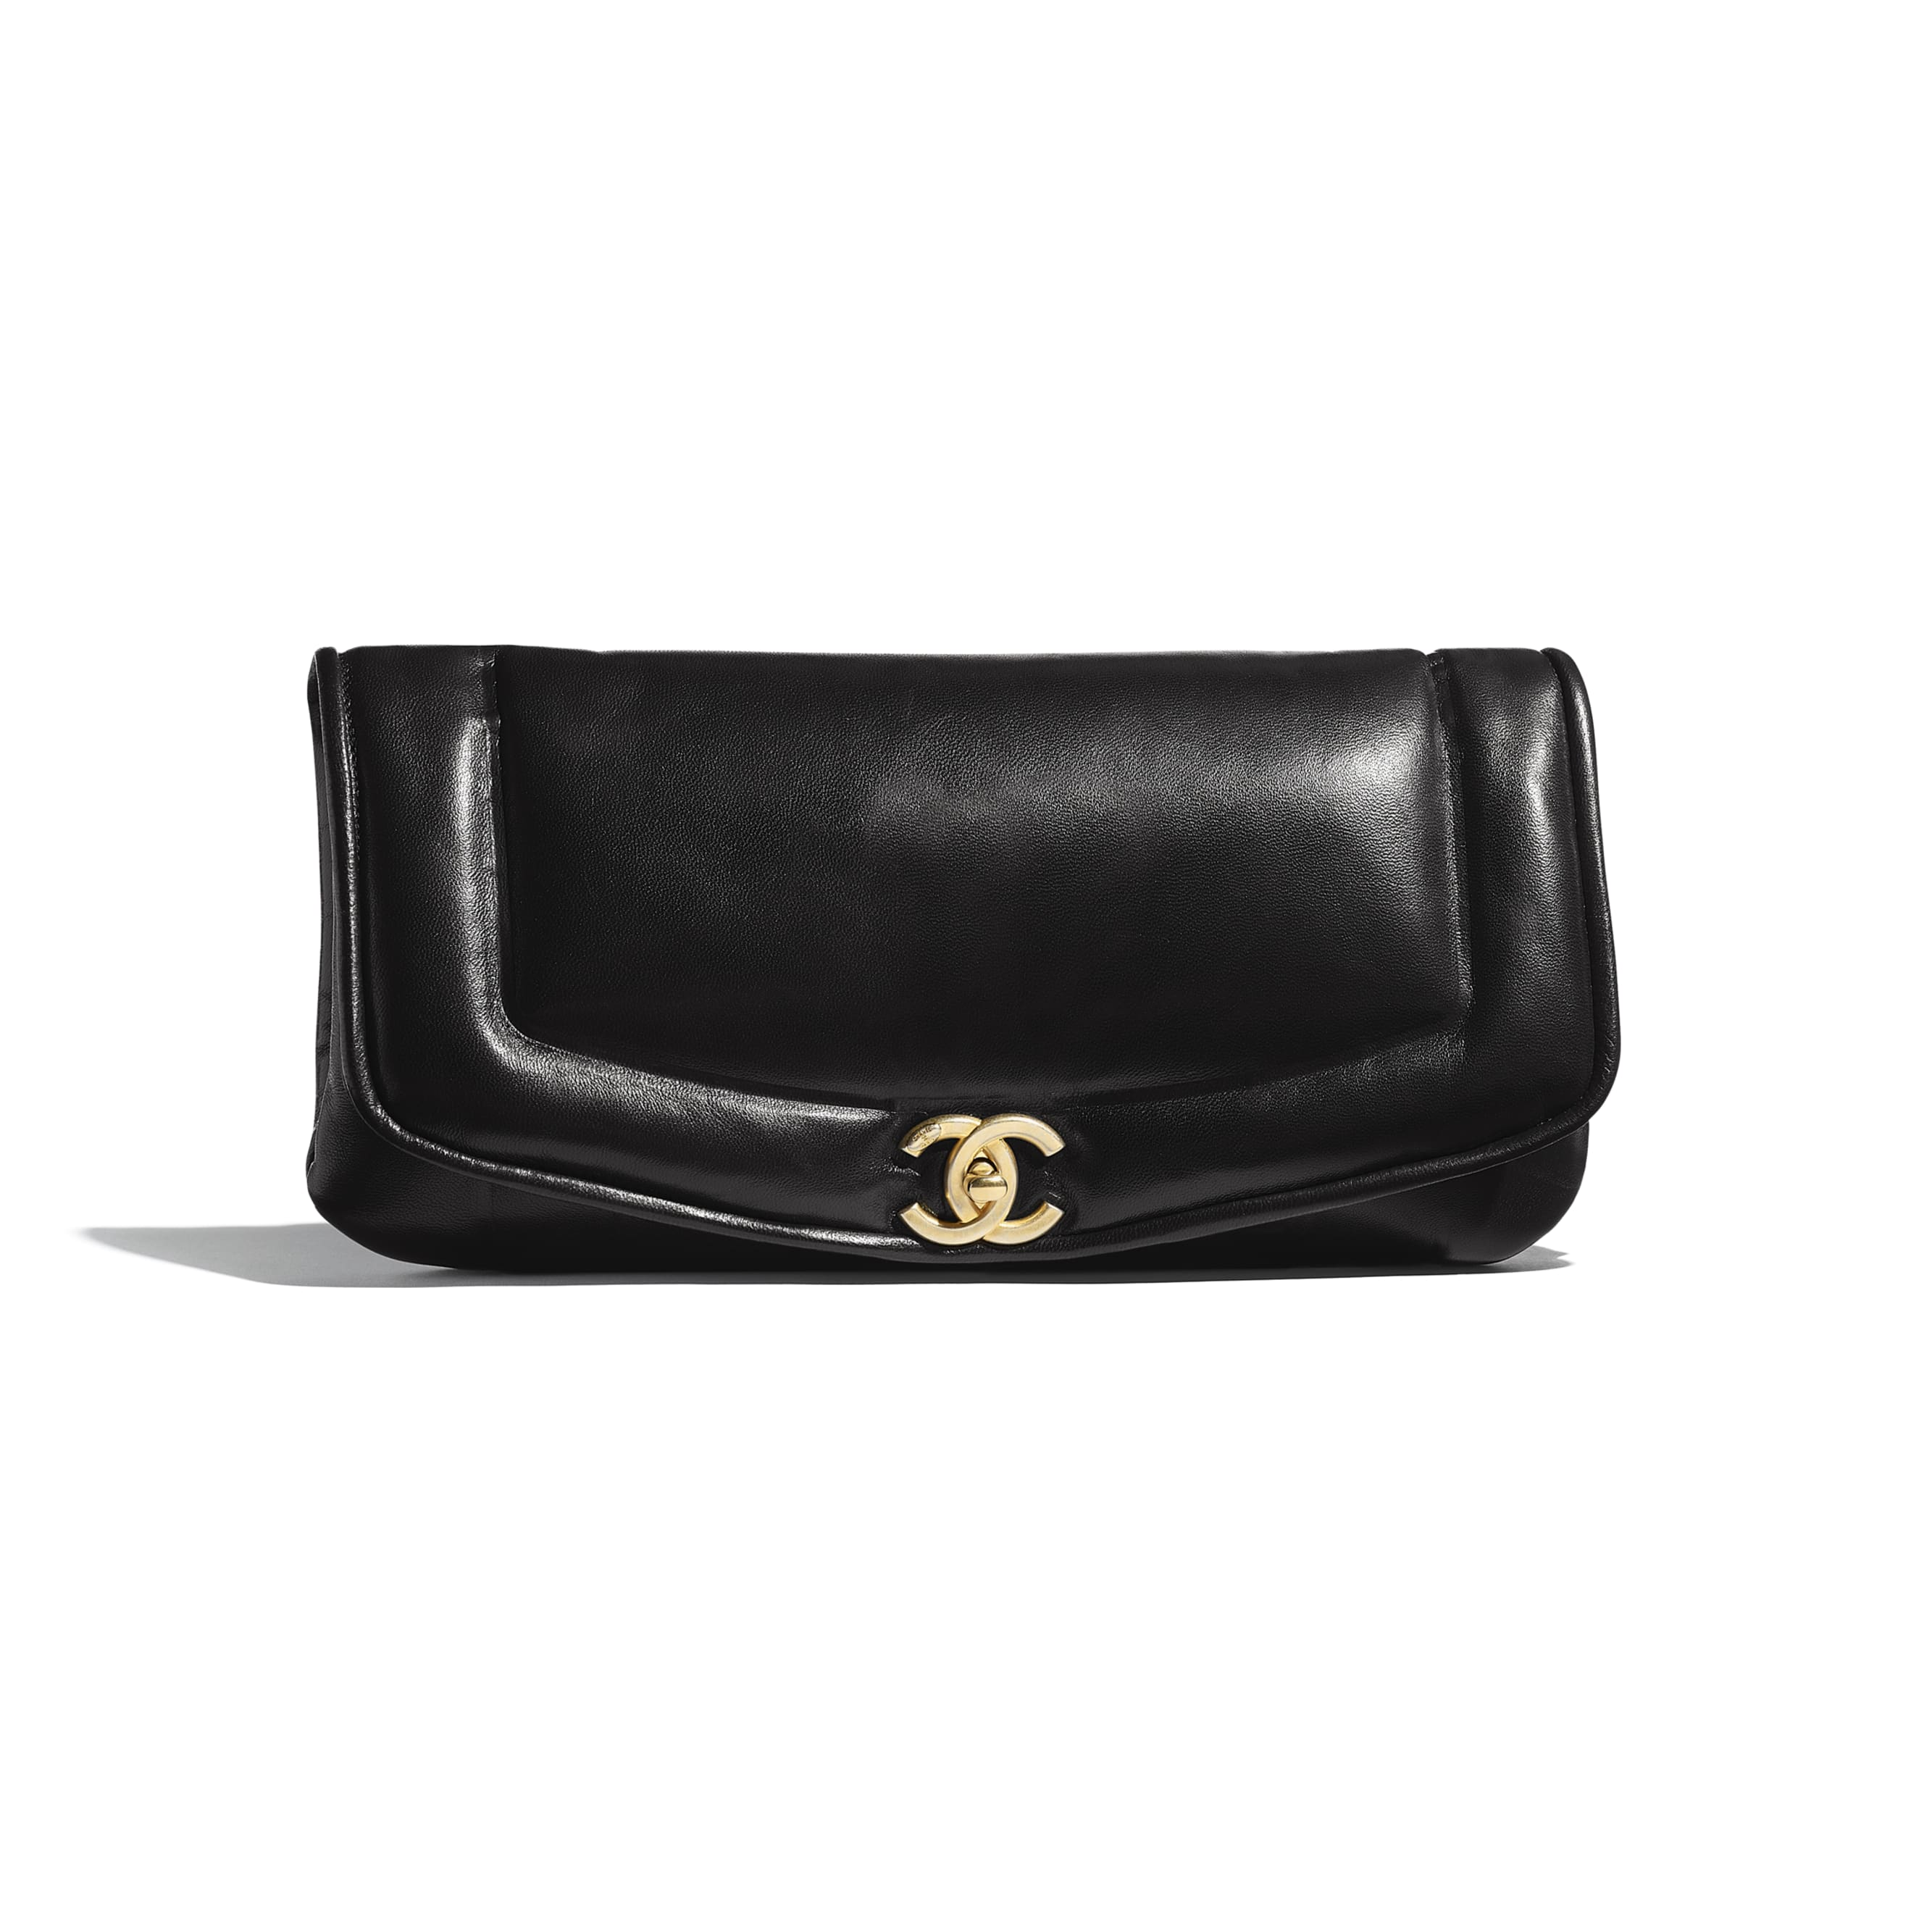 Clutch - Black - Lambskin & Gold-Tone Metal - Default view - see standard sized version